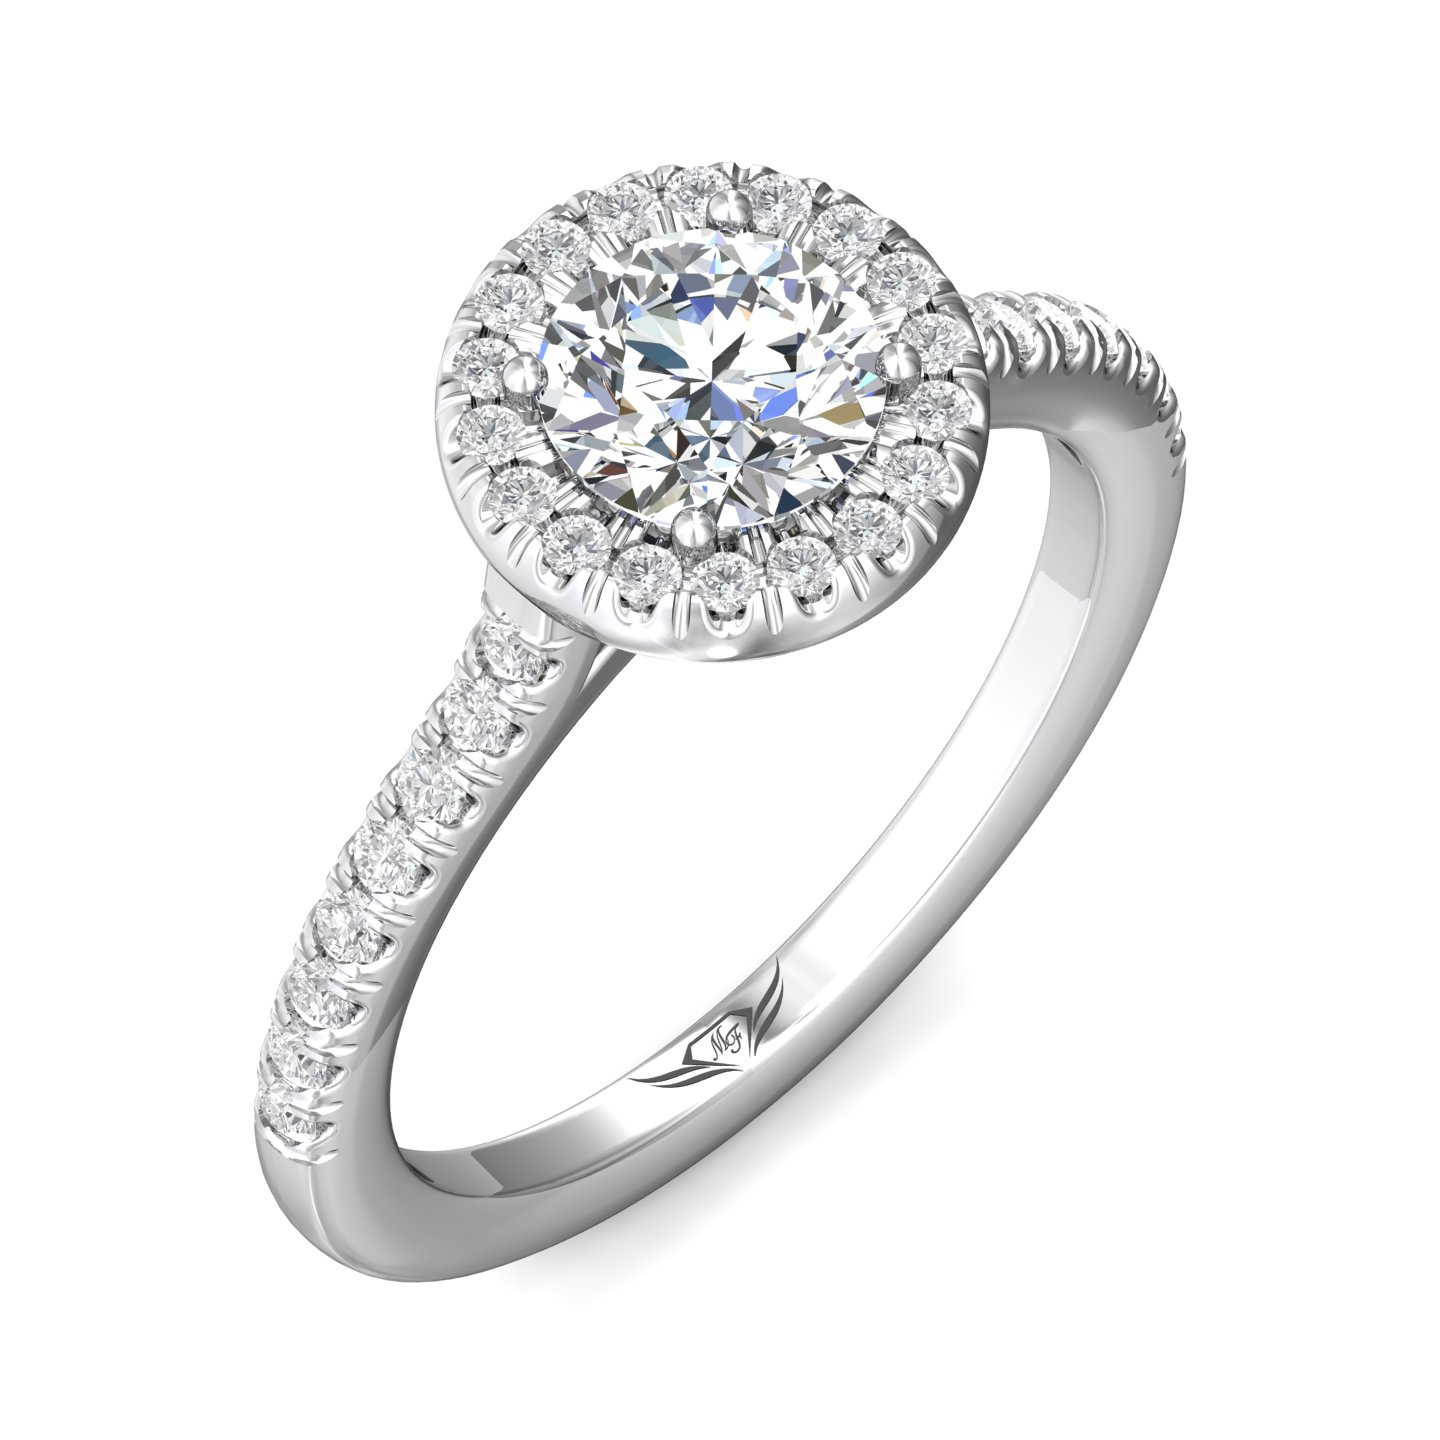 Rings - 14K White Gold FlyerFit Micropave Halo Engagement Ring - image 5